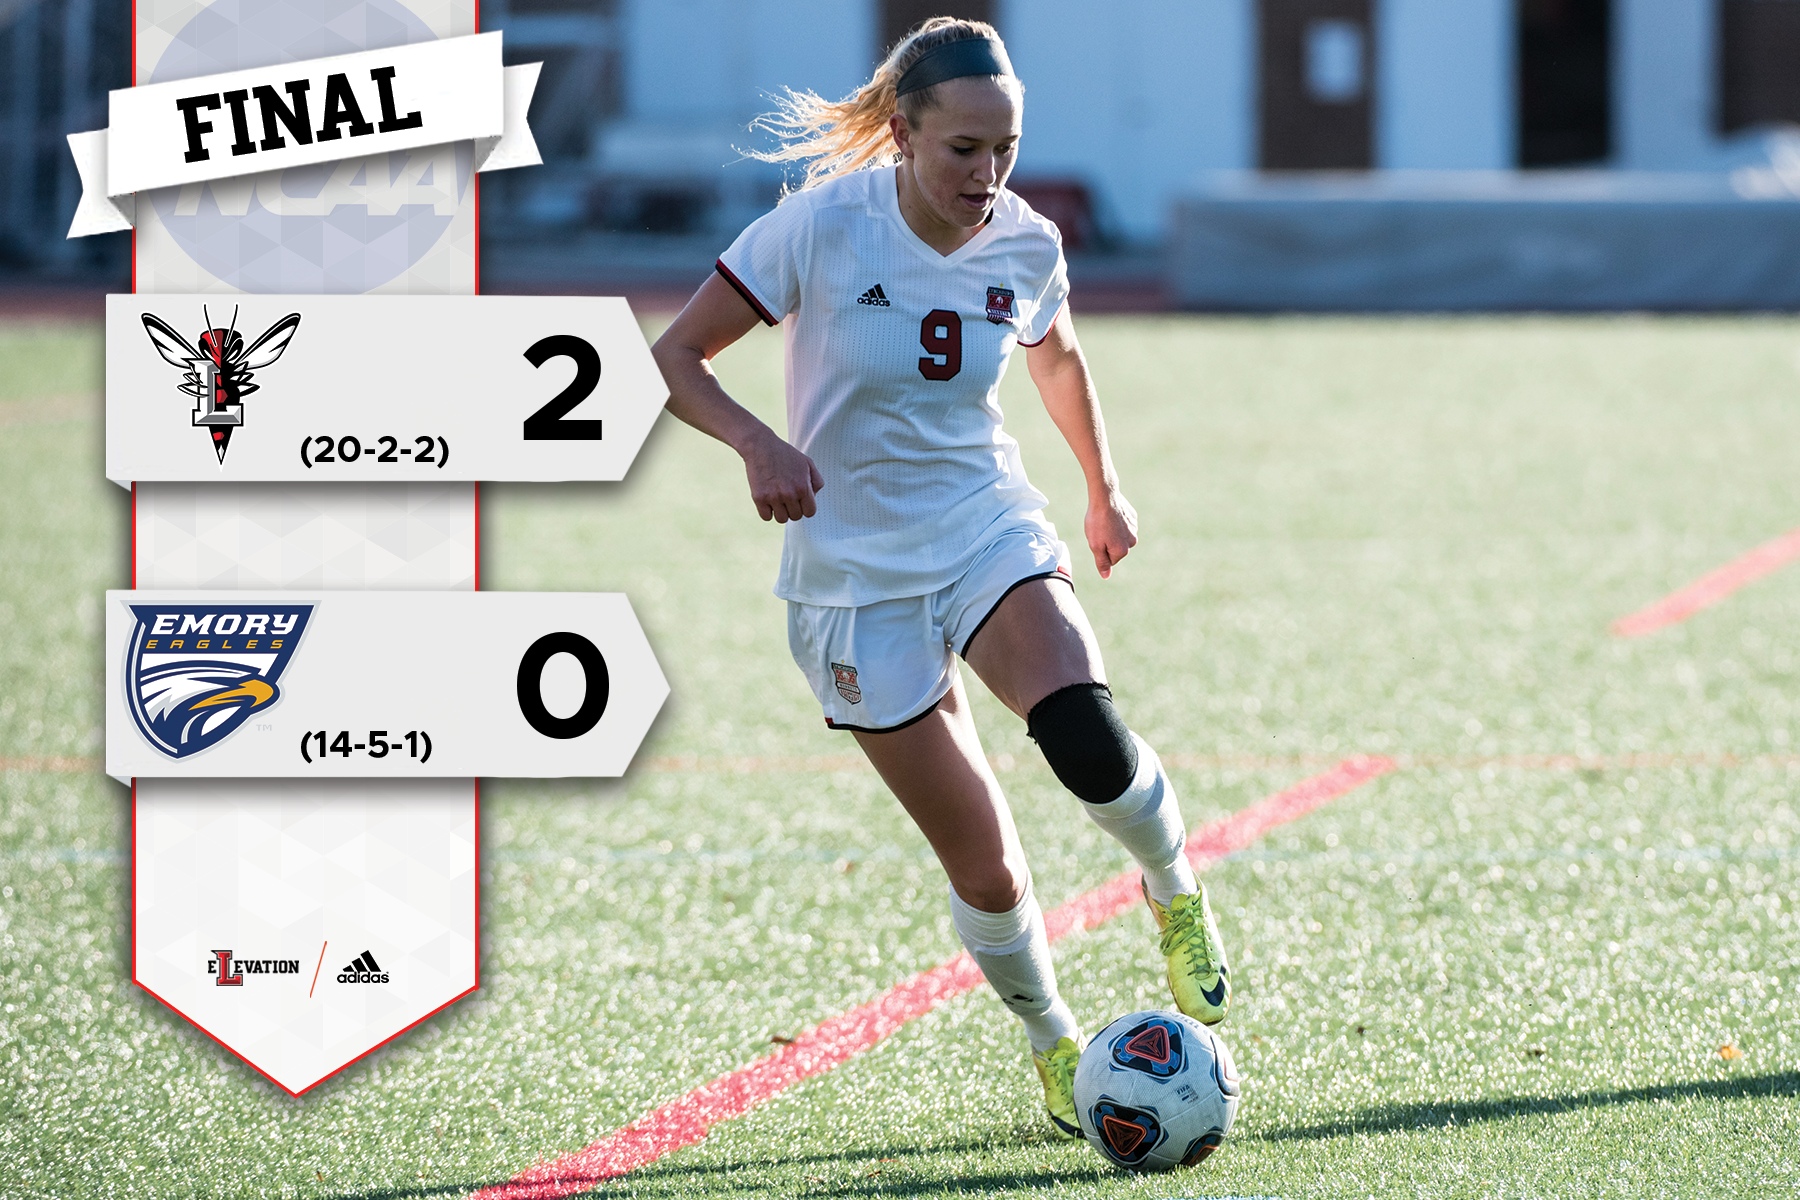 Alyssa Rudy dribbles the soccer ball. Graphic on left showing 2-0 final score and team logos.